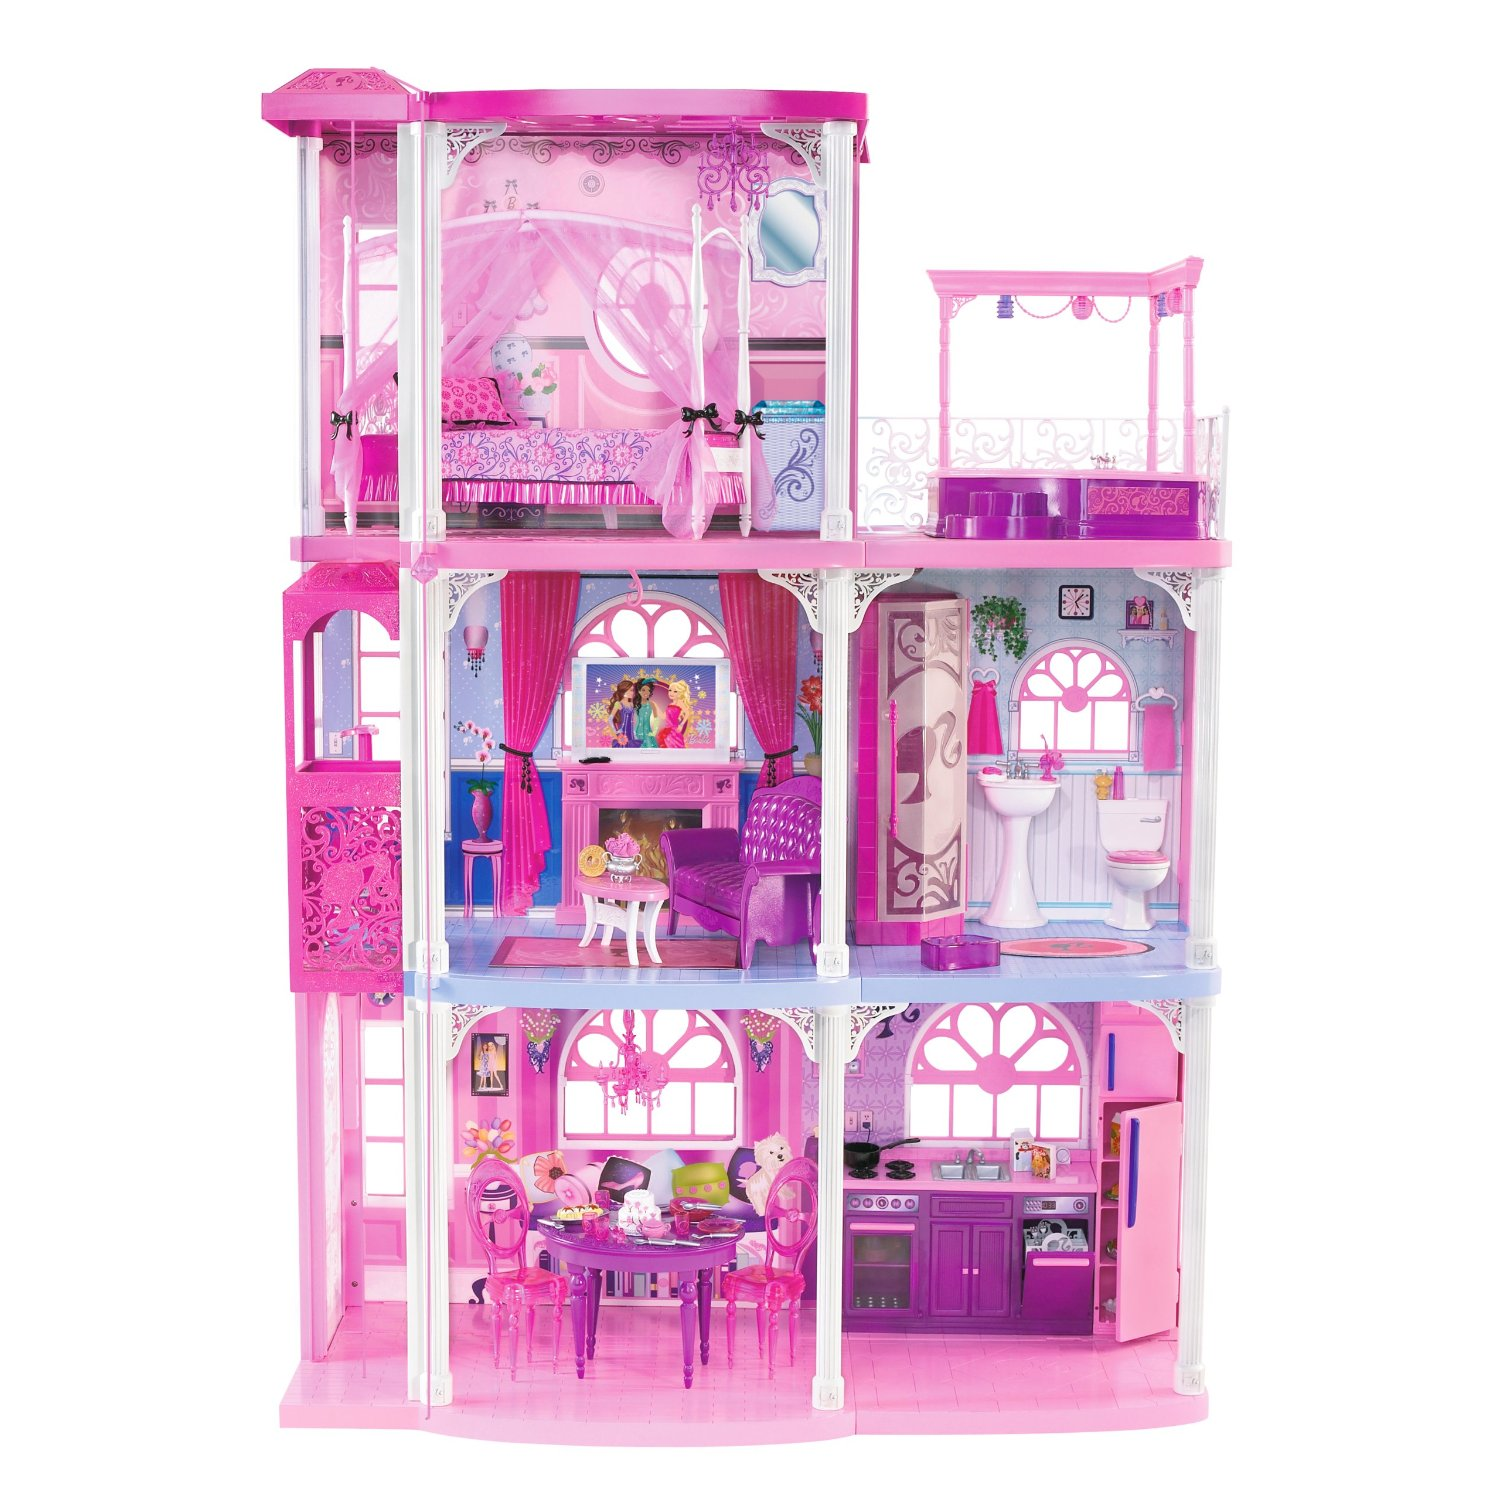 Top Three Toys Of 2012 : Amazon barbie pink story dream townhouse toys games